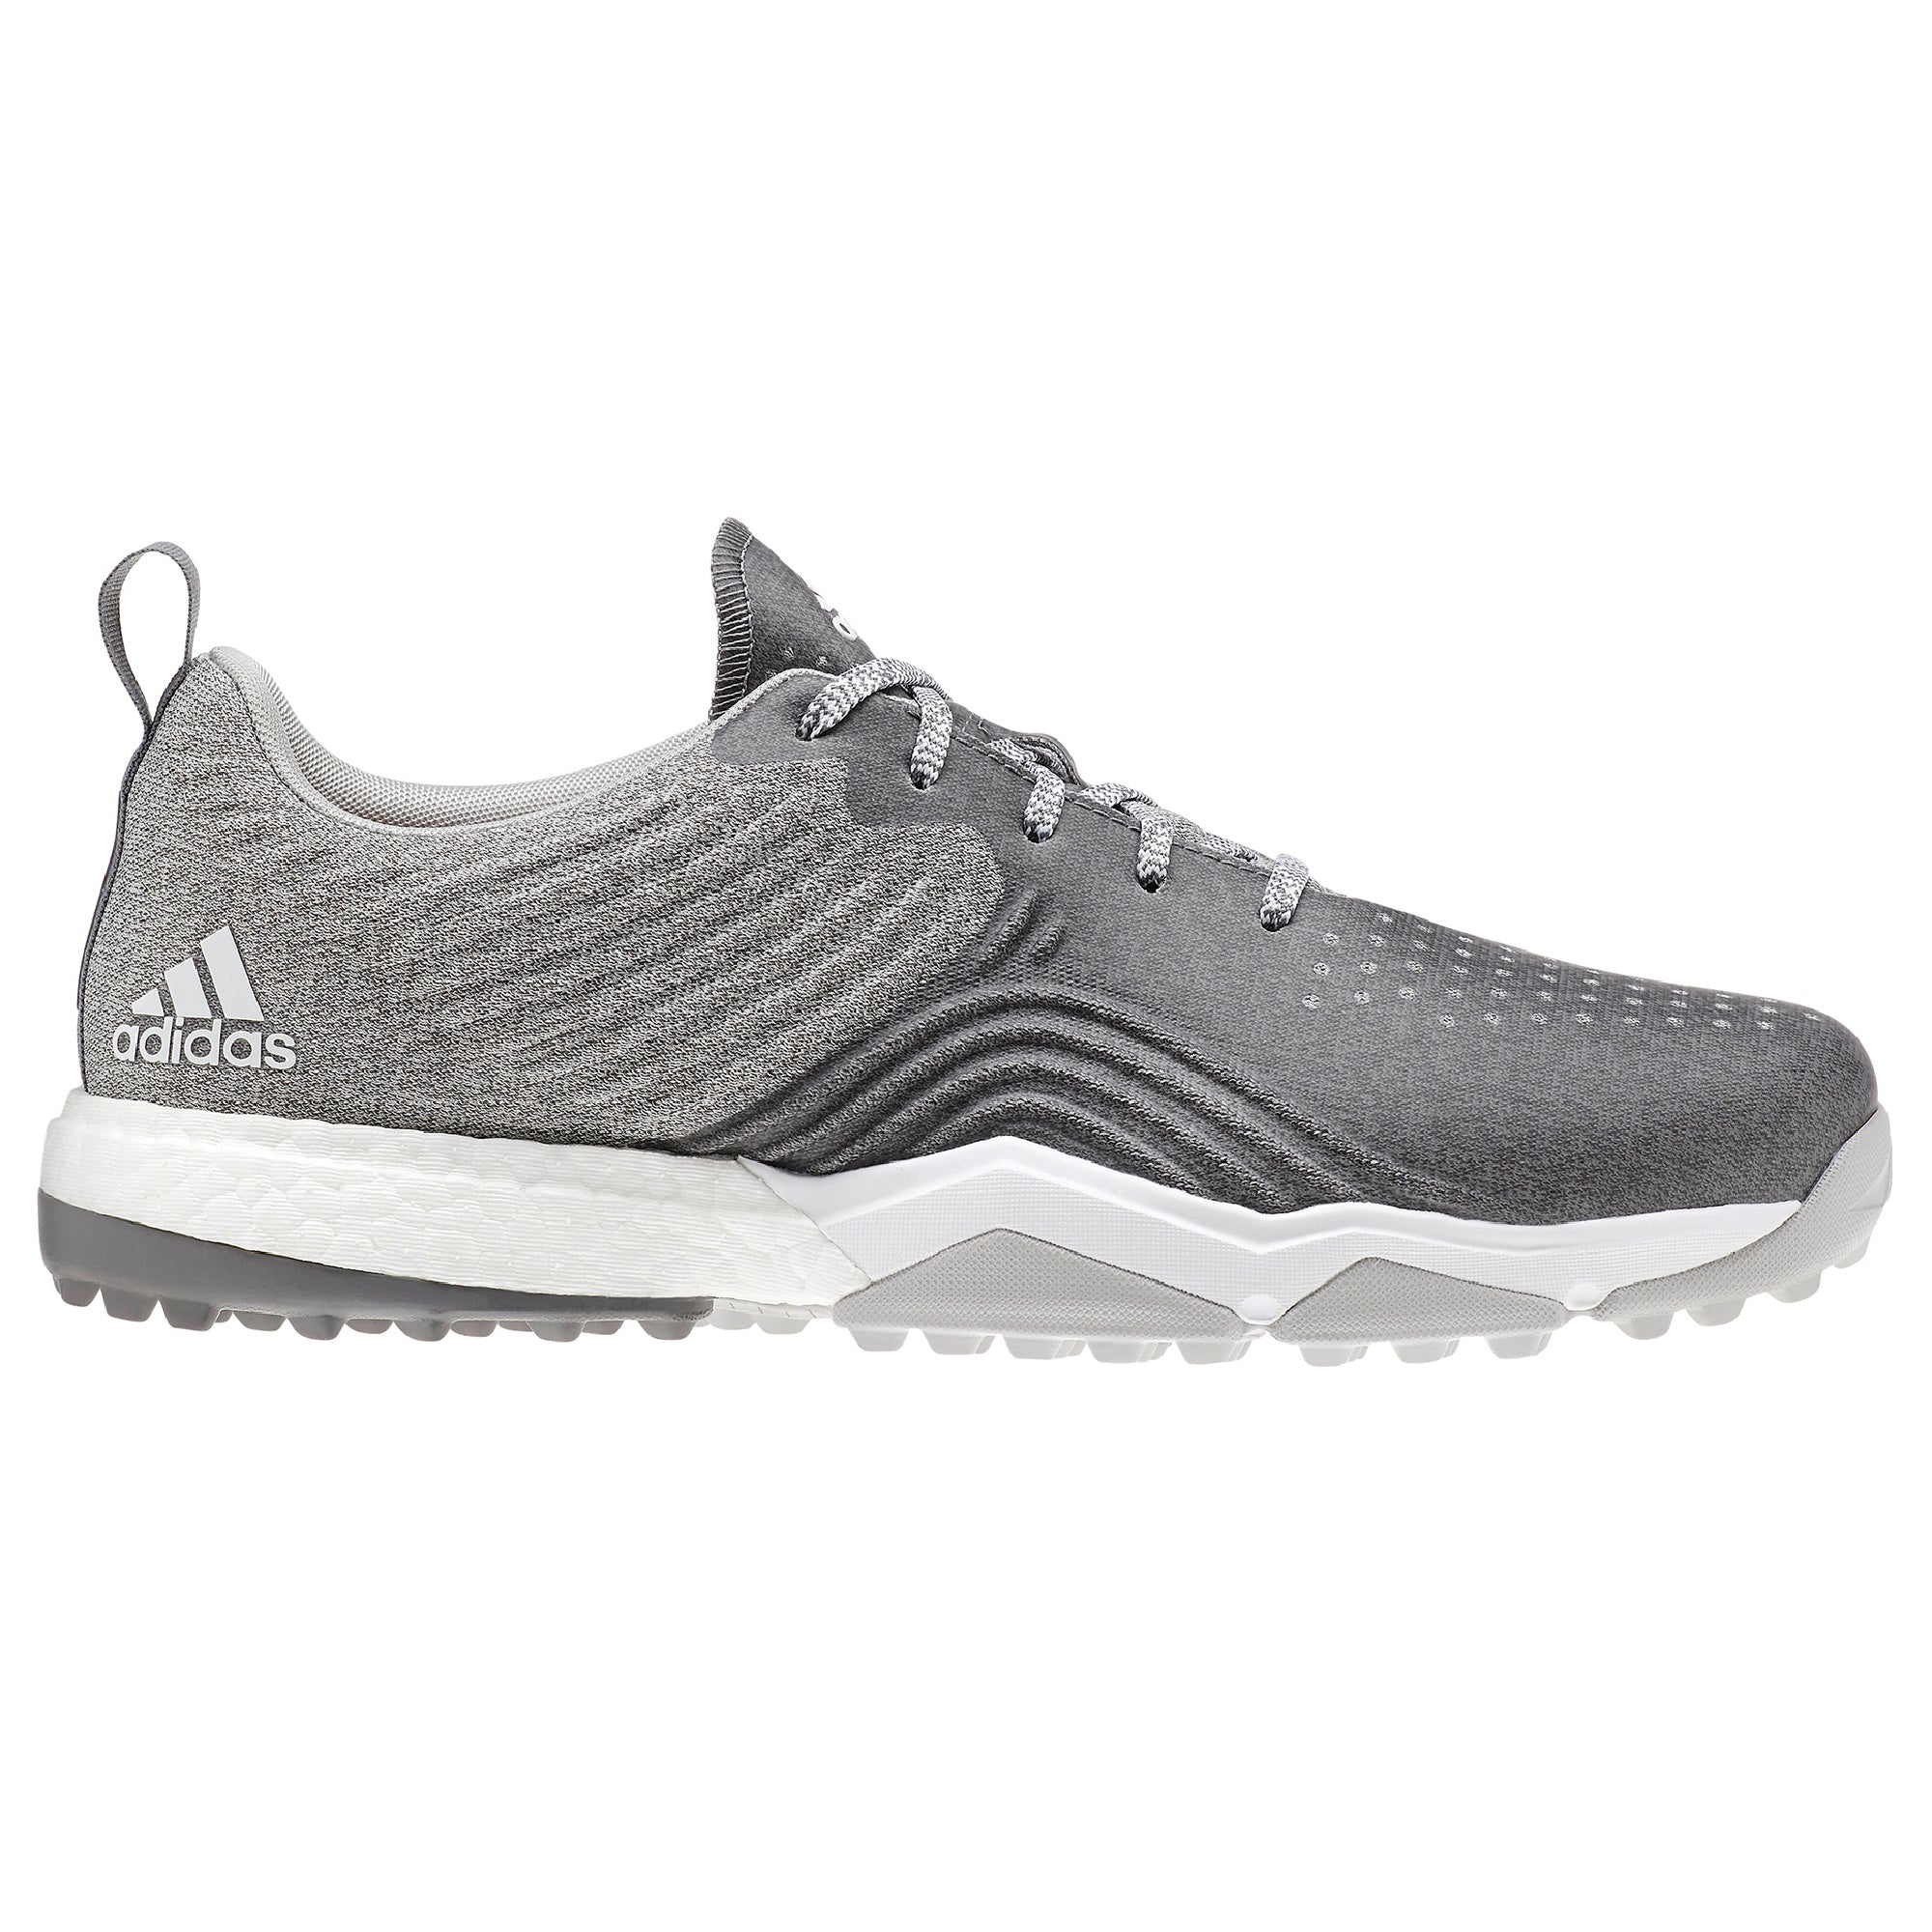 adidas AdiPower 4orged S Golf Shoes B37174